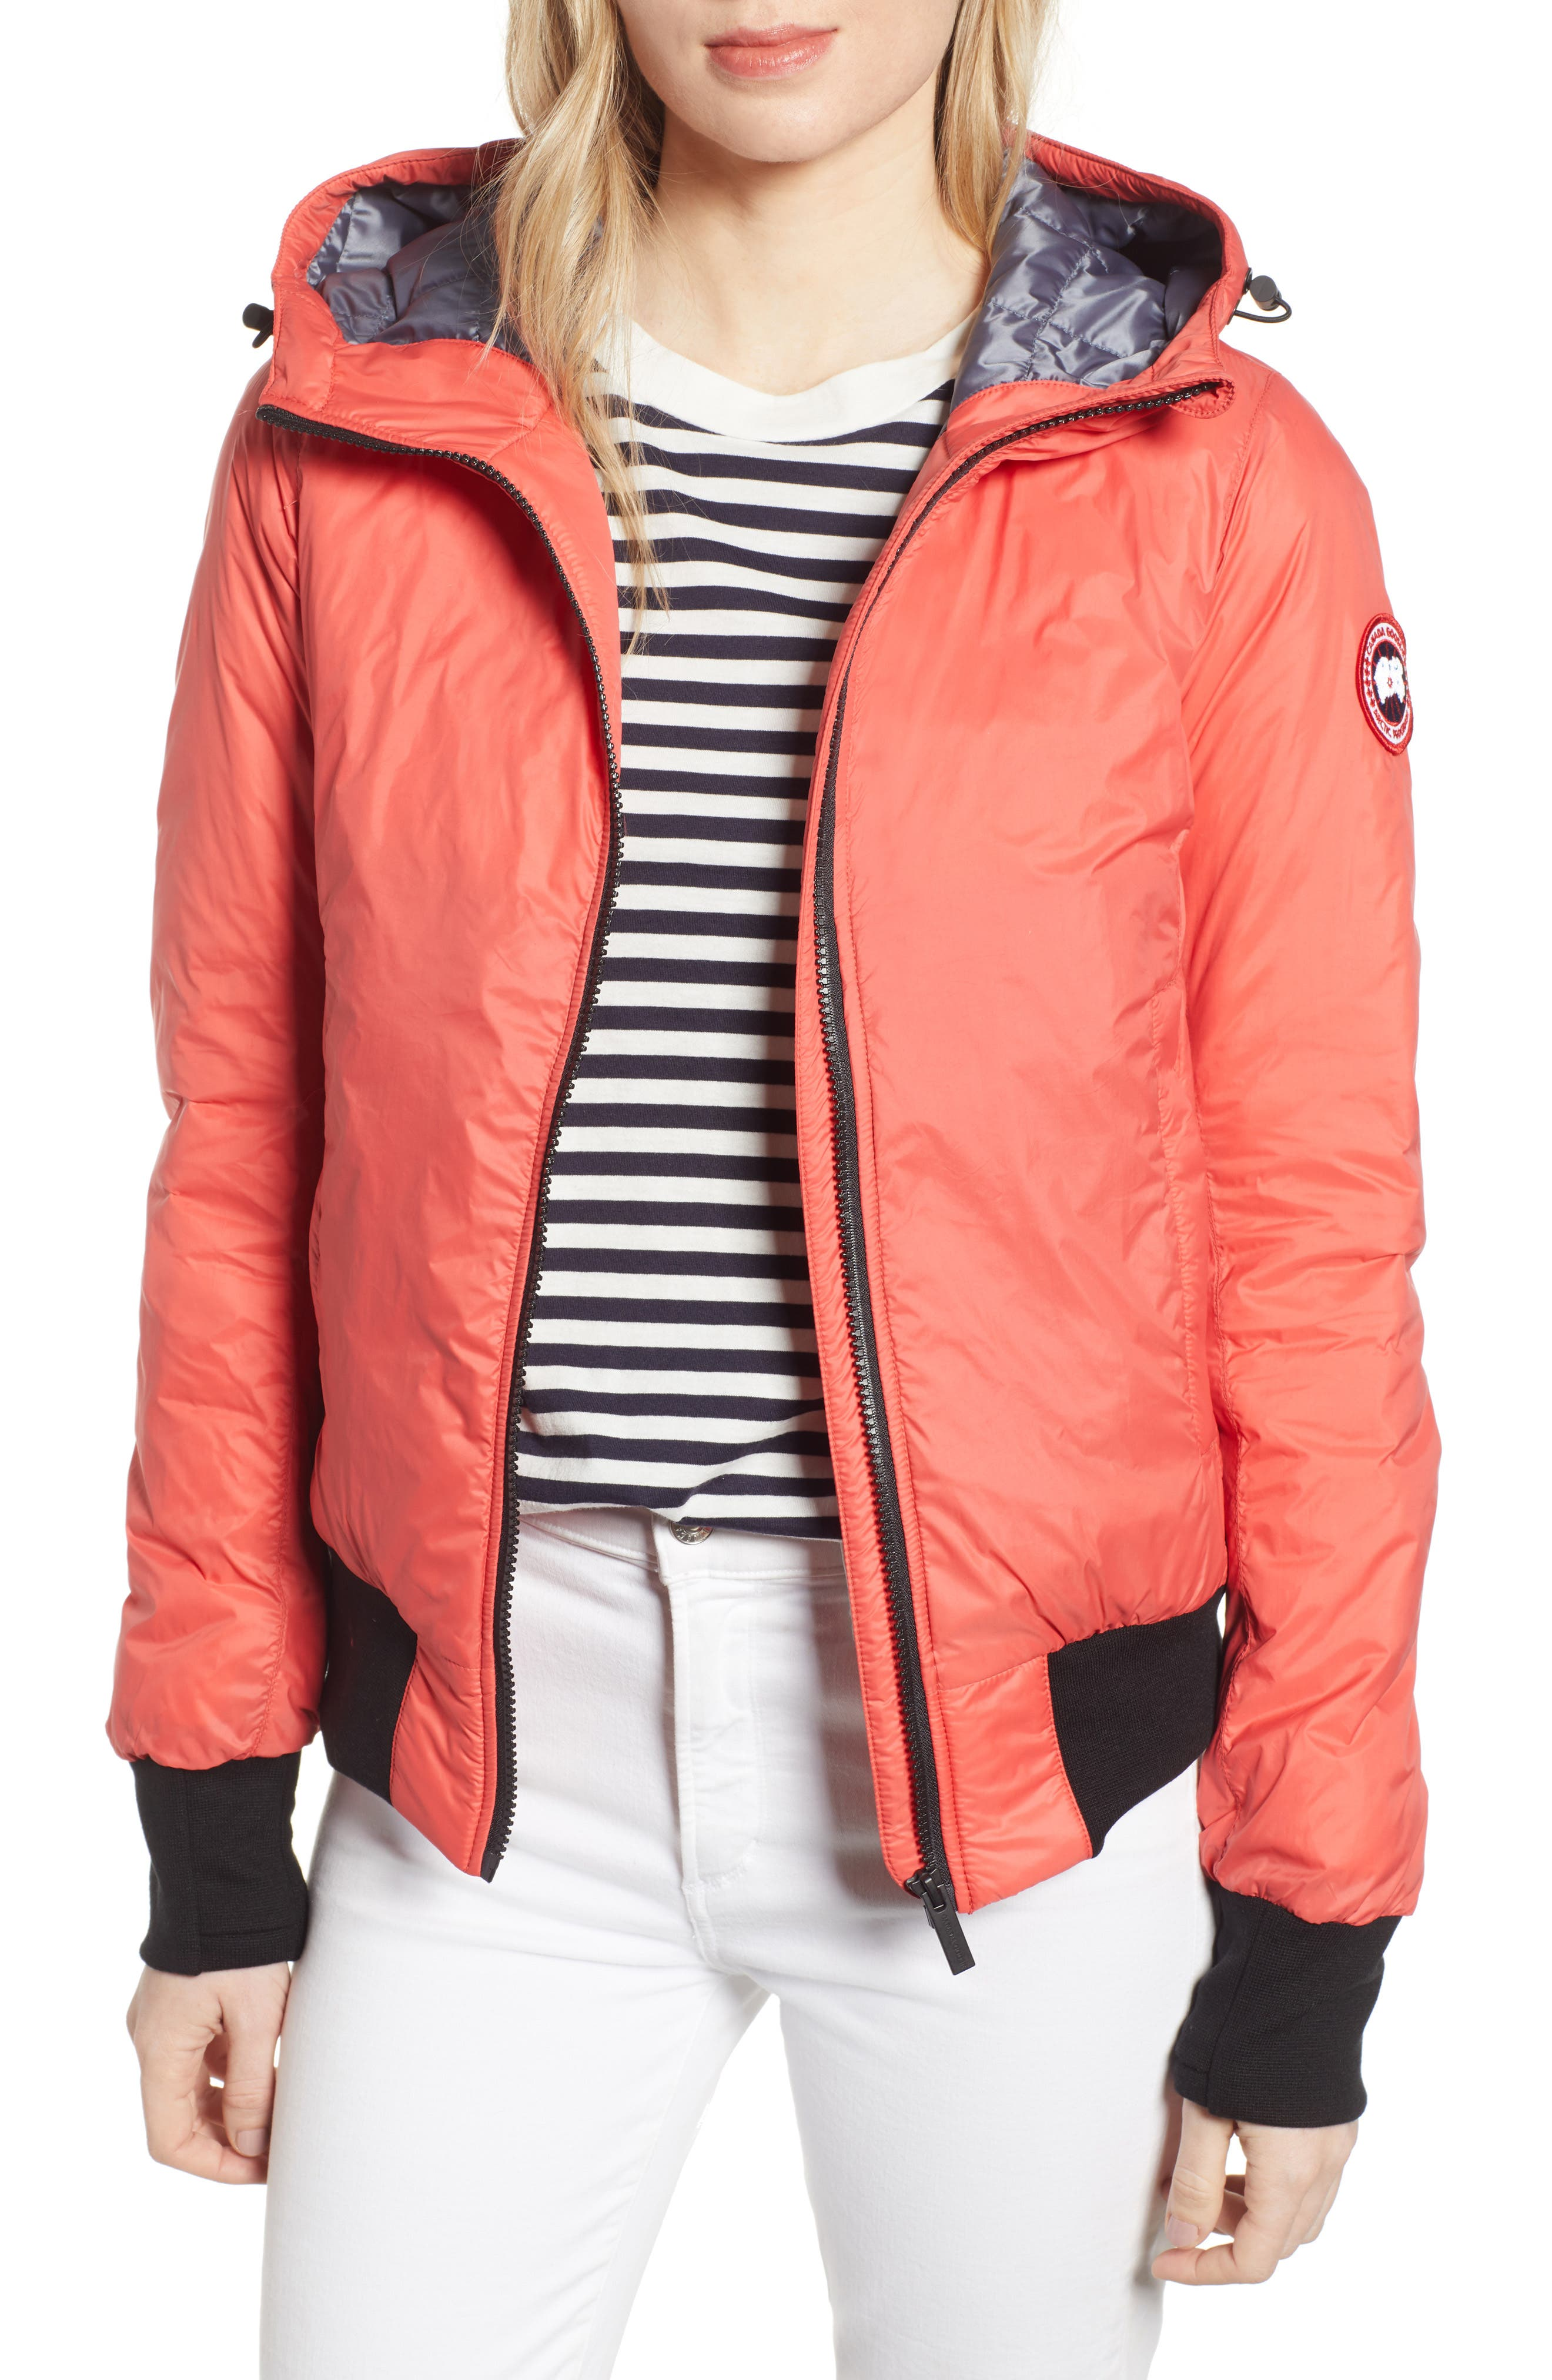 Canada Goose Dore Goose Down Hooded Jacket, (2-4) - Coral